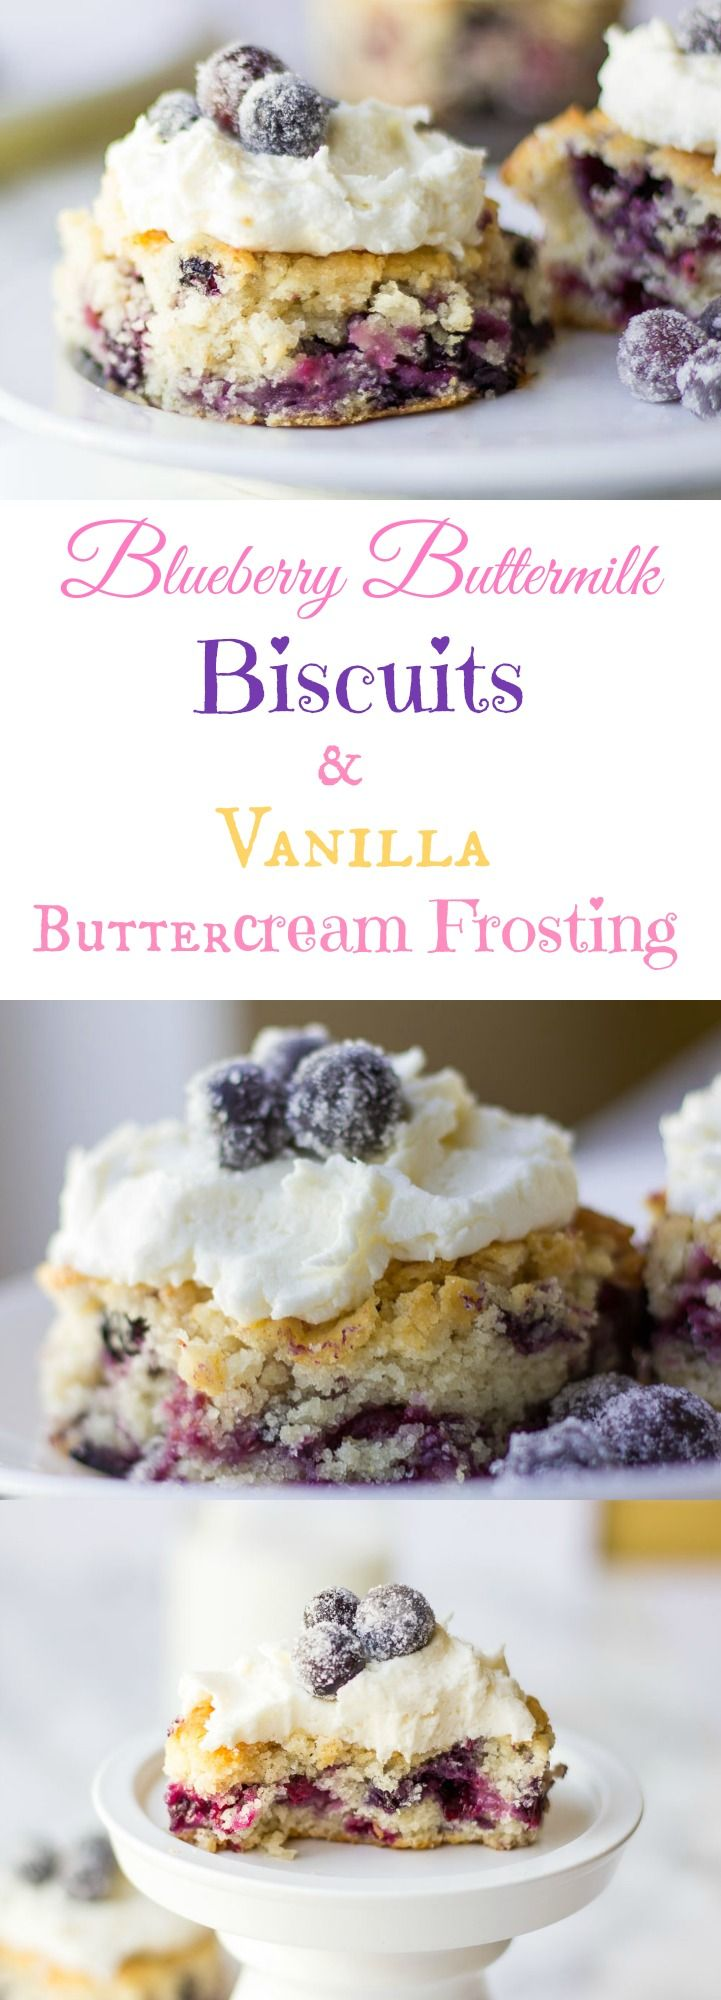 Buttery, warm, delicate, soft and fluffy Blueberry Buttermilk Biscuits with Vanilla Buttercream Frosting. Anybody that knows me, know that I love watching cooking shows. I wish I could watch them all day long though. One night, as I... #biscuits #blueberrybuttermilkbiscuits #blueberryrecipes